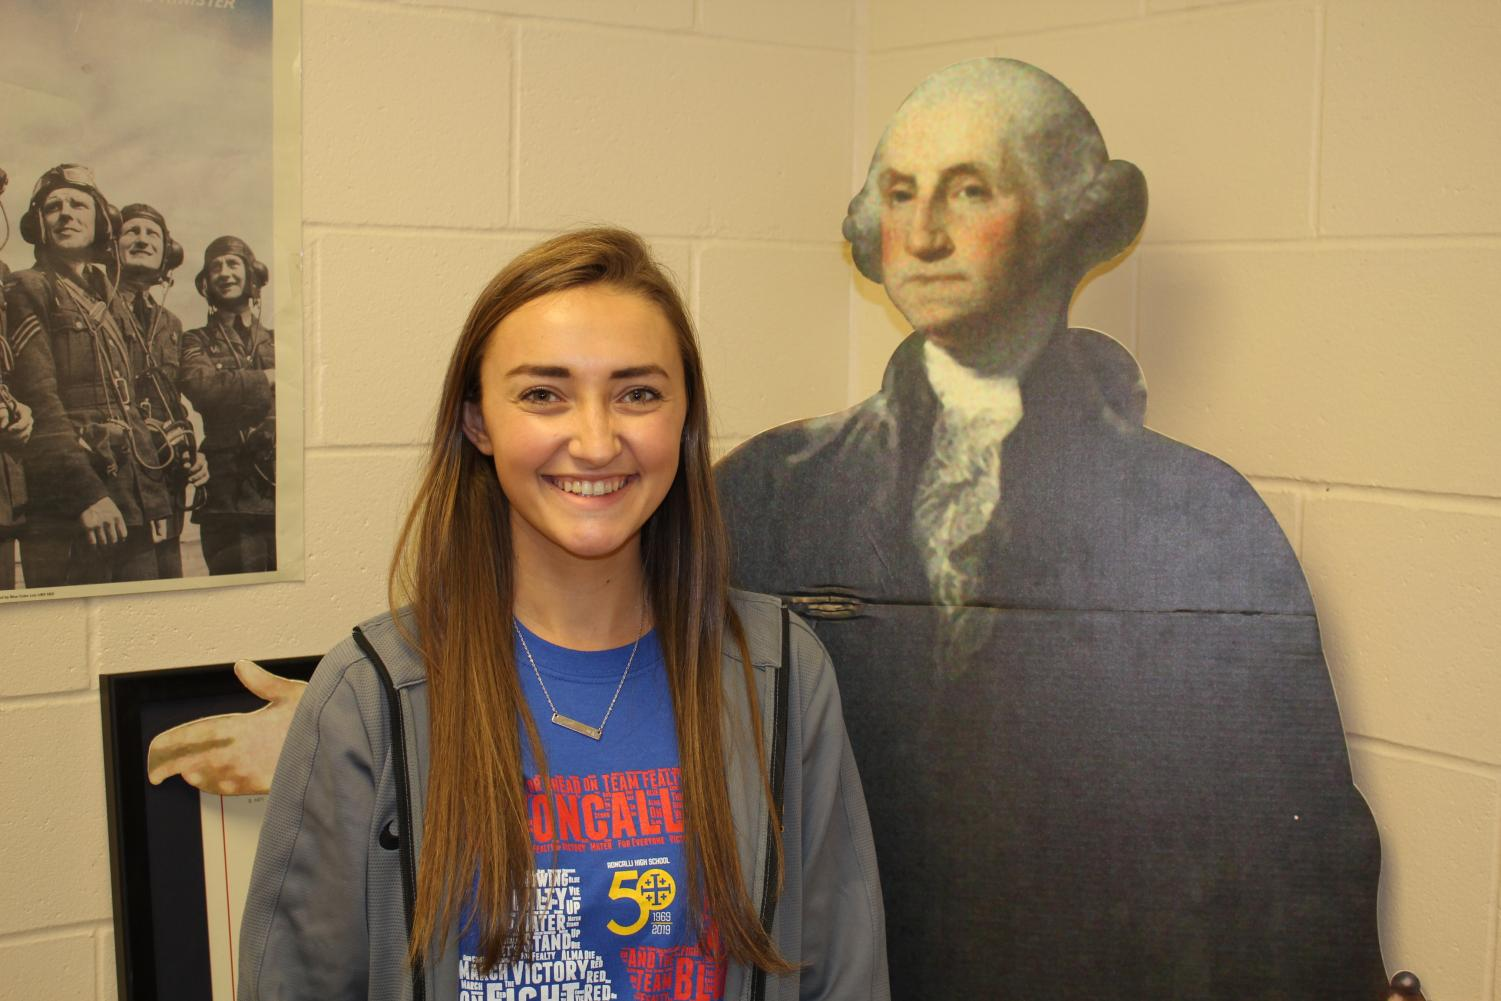 TRADITION OF EXCELLENCE: Maddie Mulinaro stands by her role model George Washington in her US History classroom. He was one of the first additions to her new classroom.